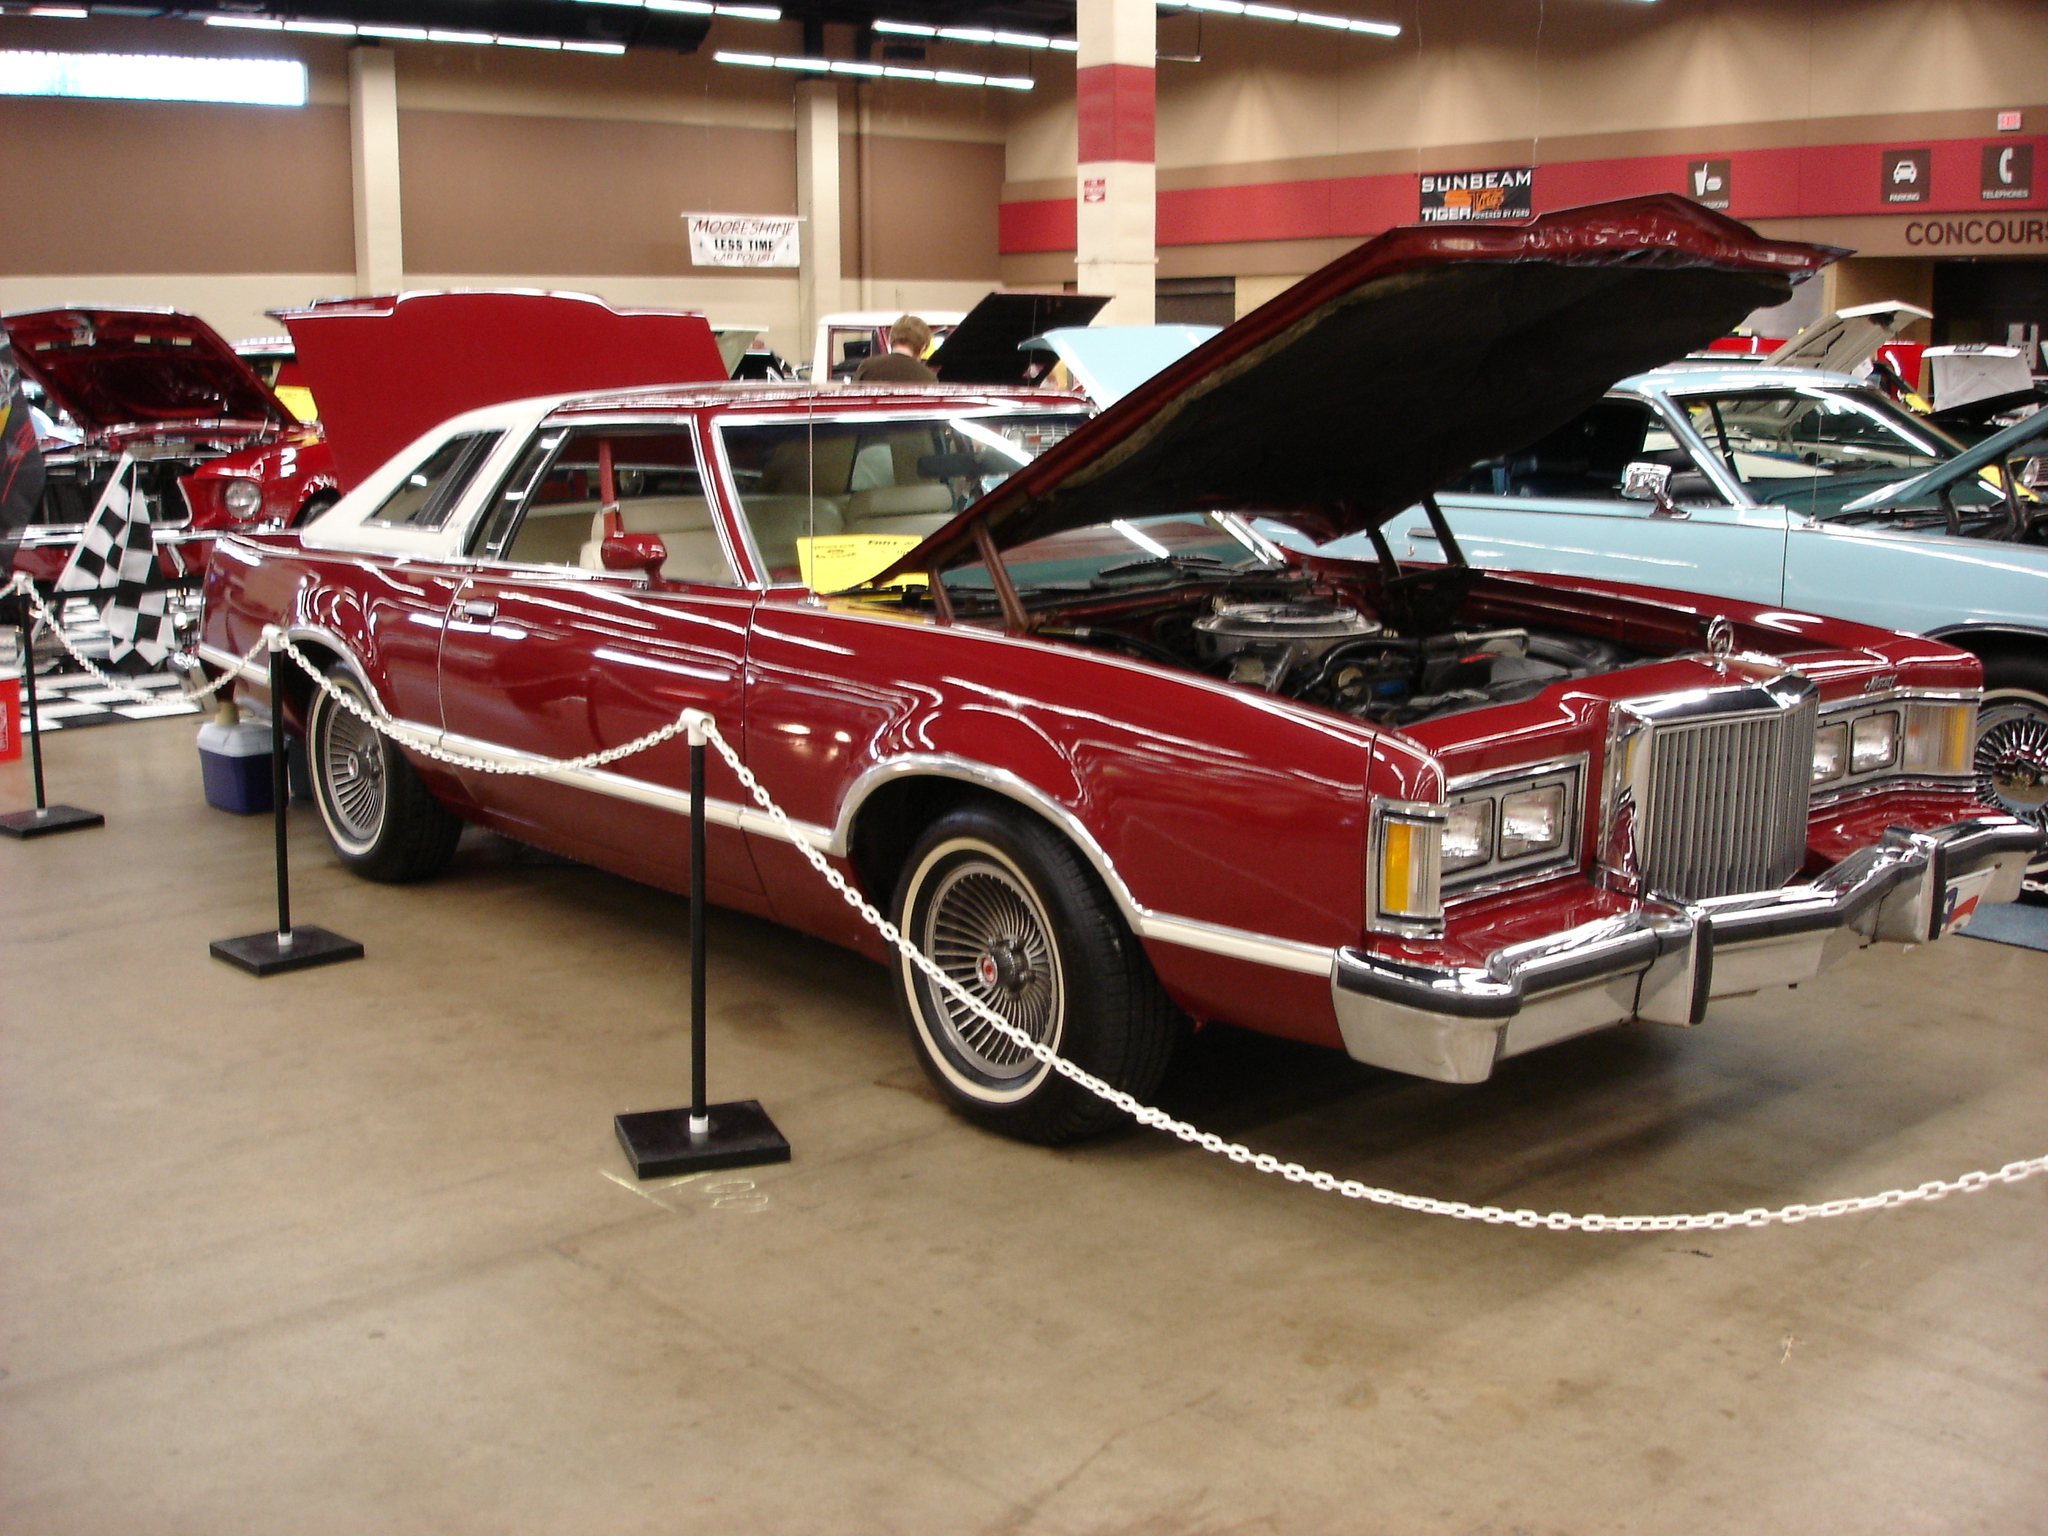 1978 Ford Cougar #18